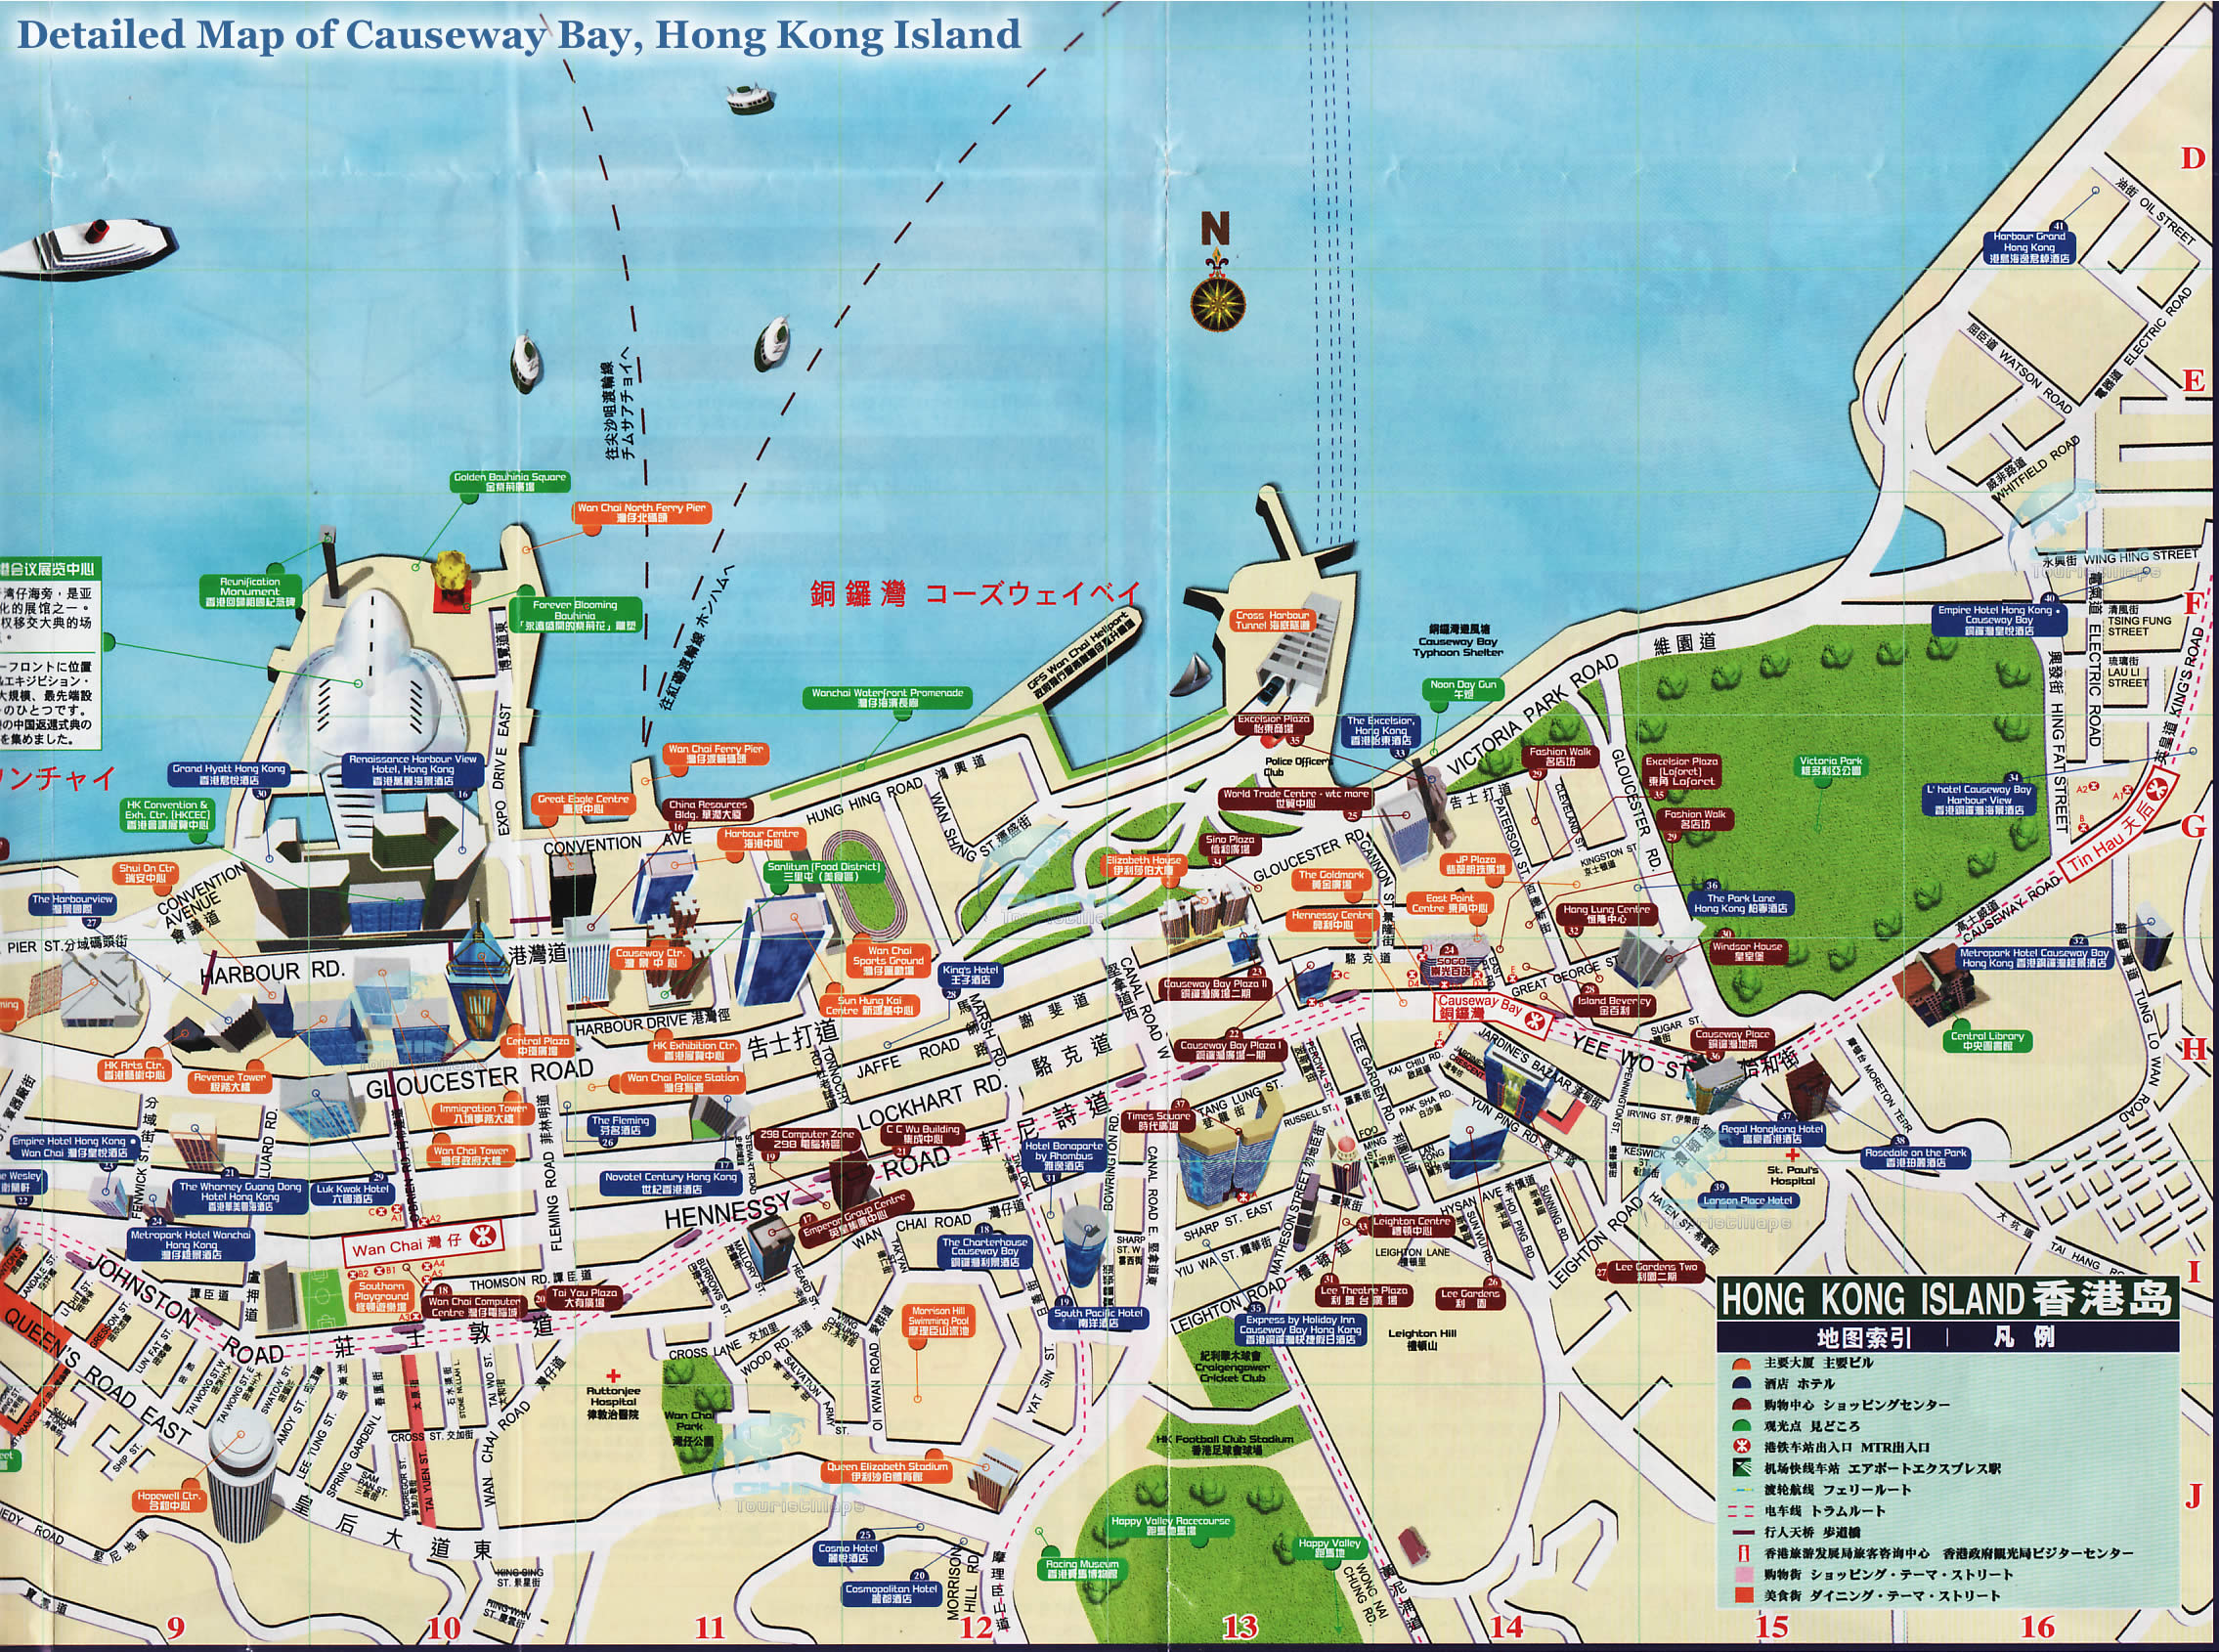 Map of Causeway Bay, Hong Kong